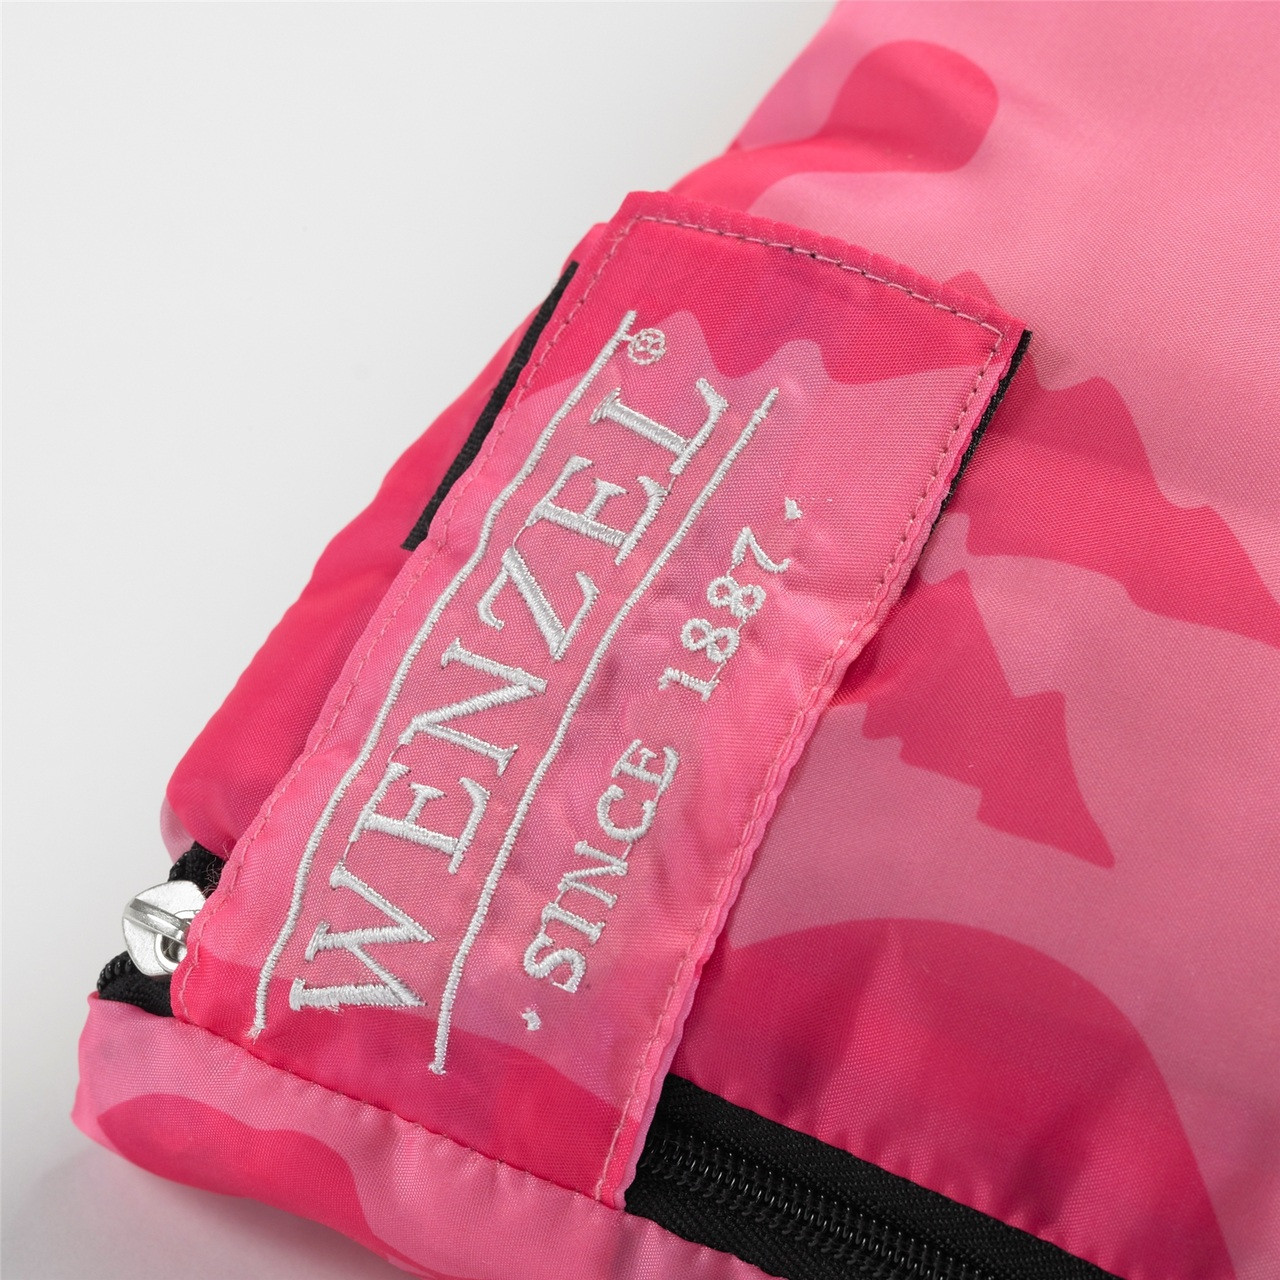 Close up view of the Velcro latch over the zipper on the Wenzel Kids Pink Moose 40 degree sleeping bag